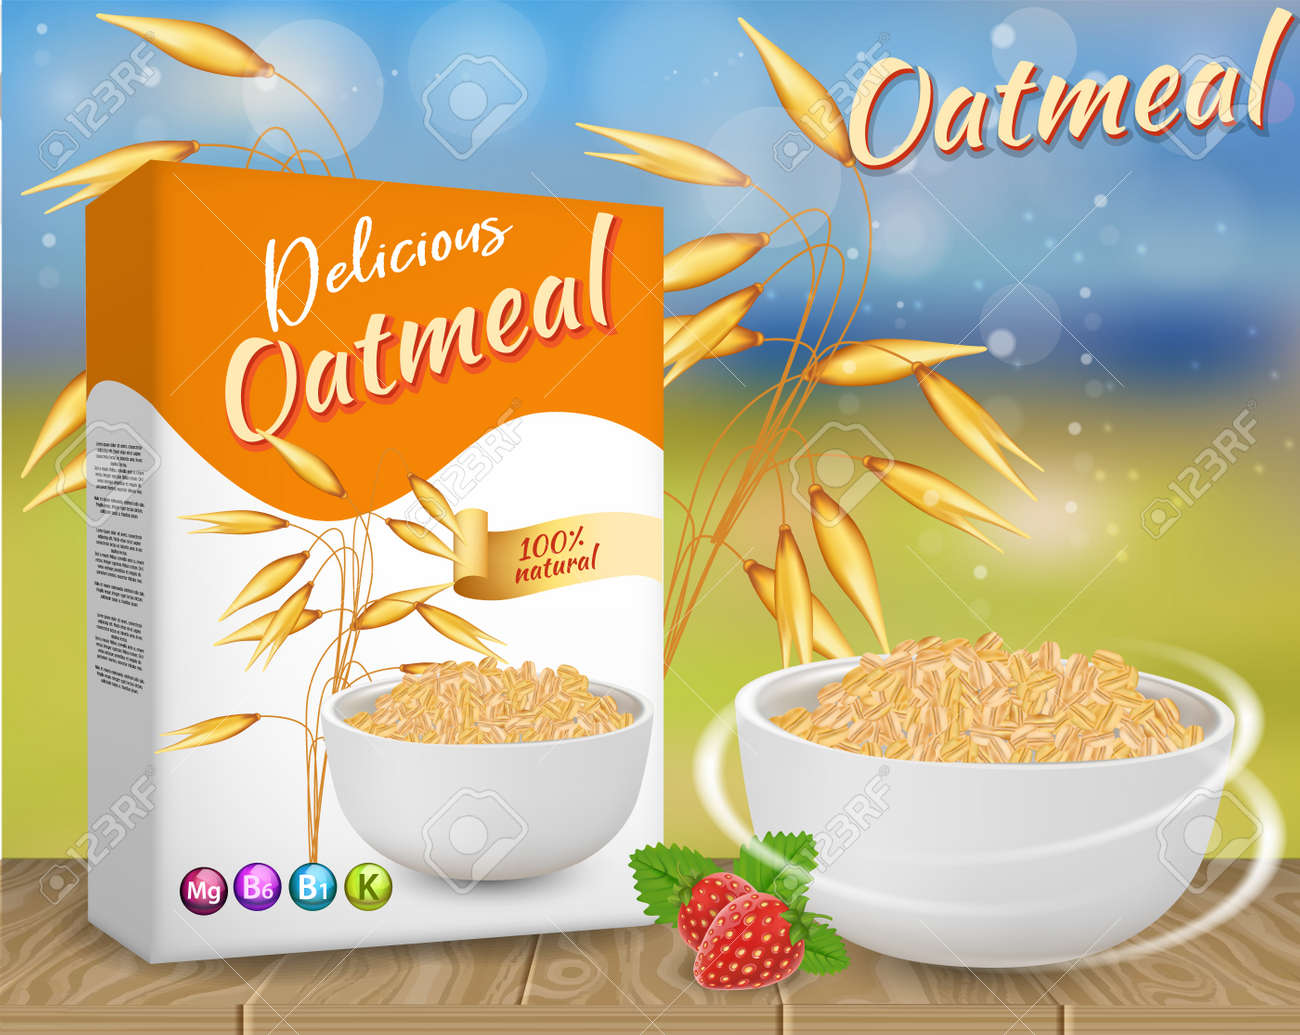 Oatmeal ads vector realistic illustration - 104142778